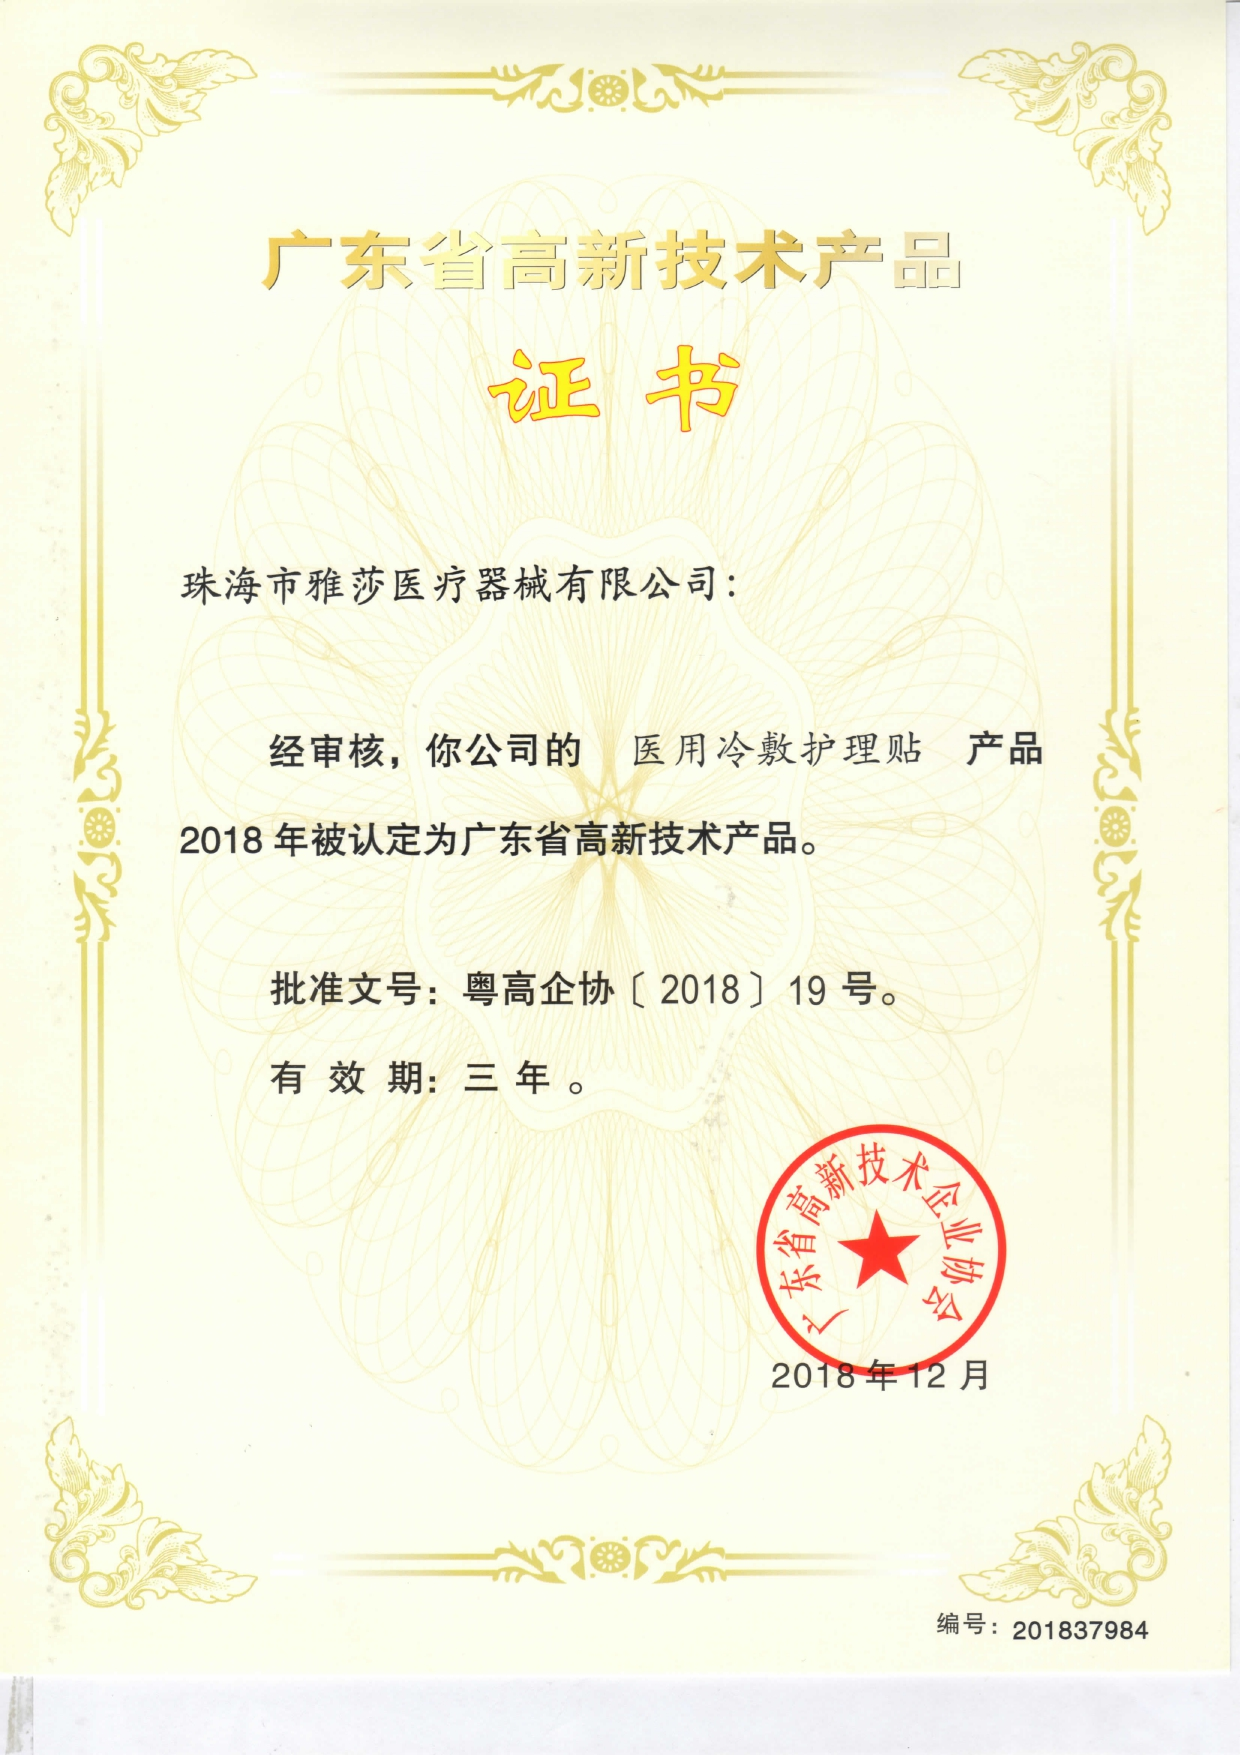 (Repairing Soothing Mask) Certificate of Guangdong Province New High-Tech Product